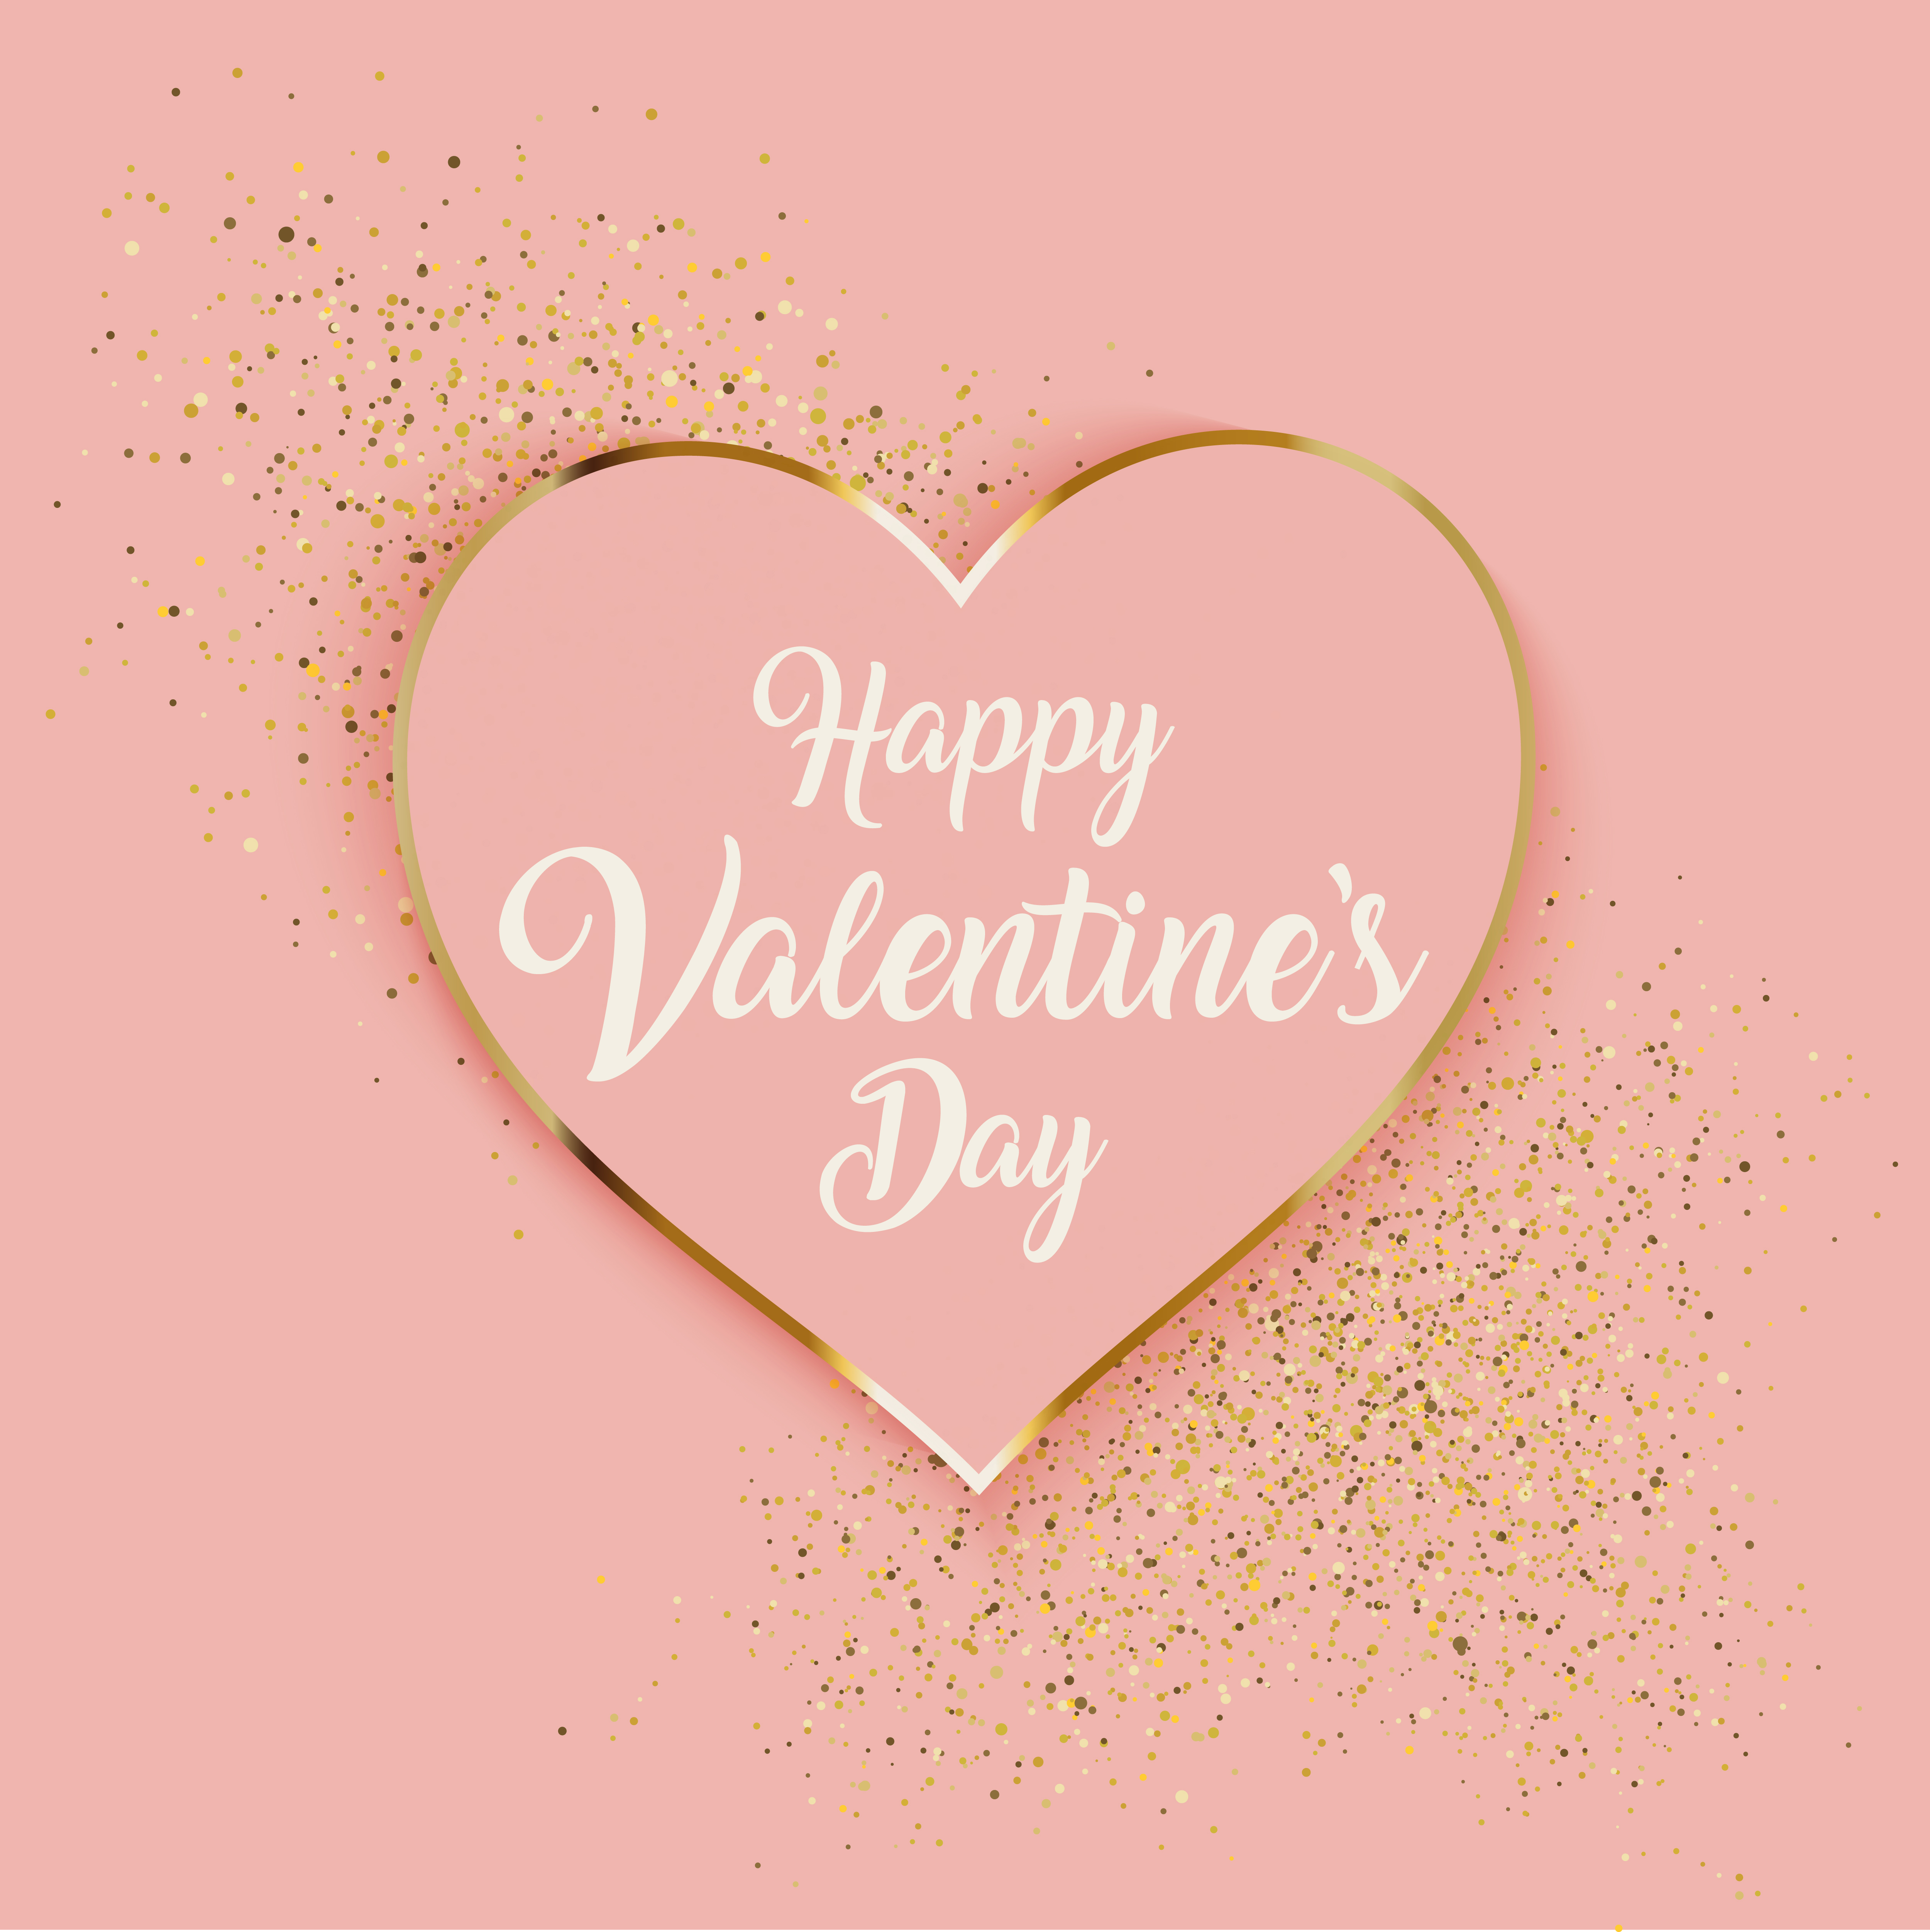 Valentine S Day Background With Heart And Gold Glitter Download Free Vectors Clipart Graphics Vector Art